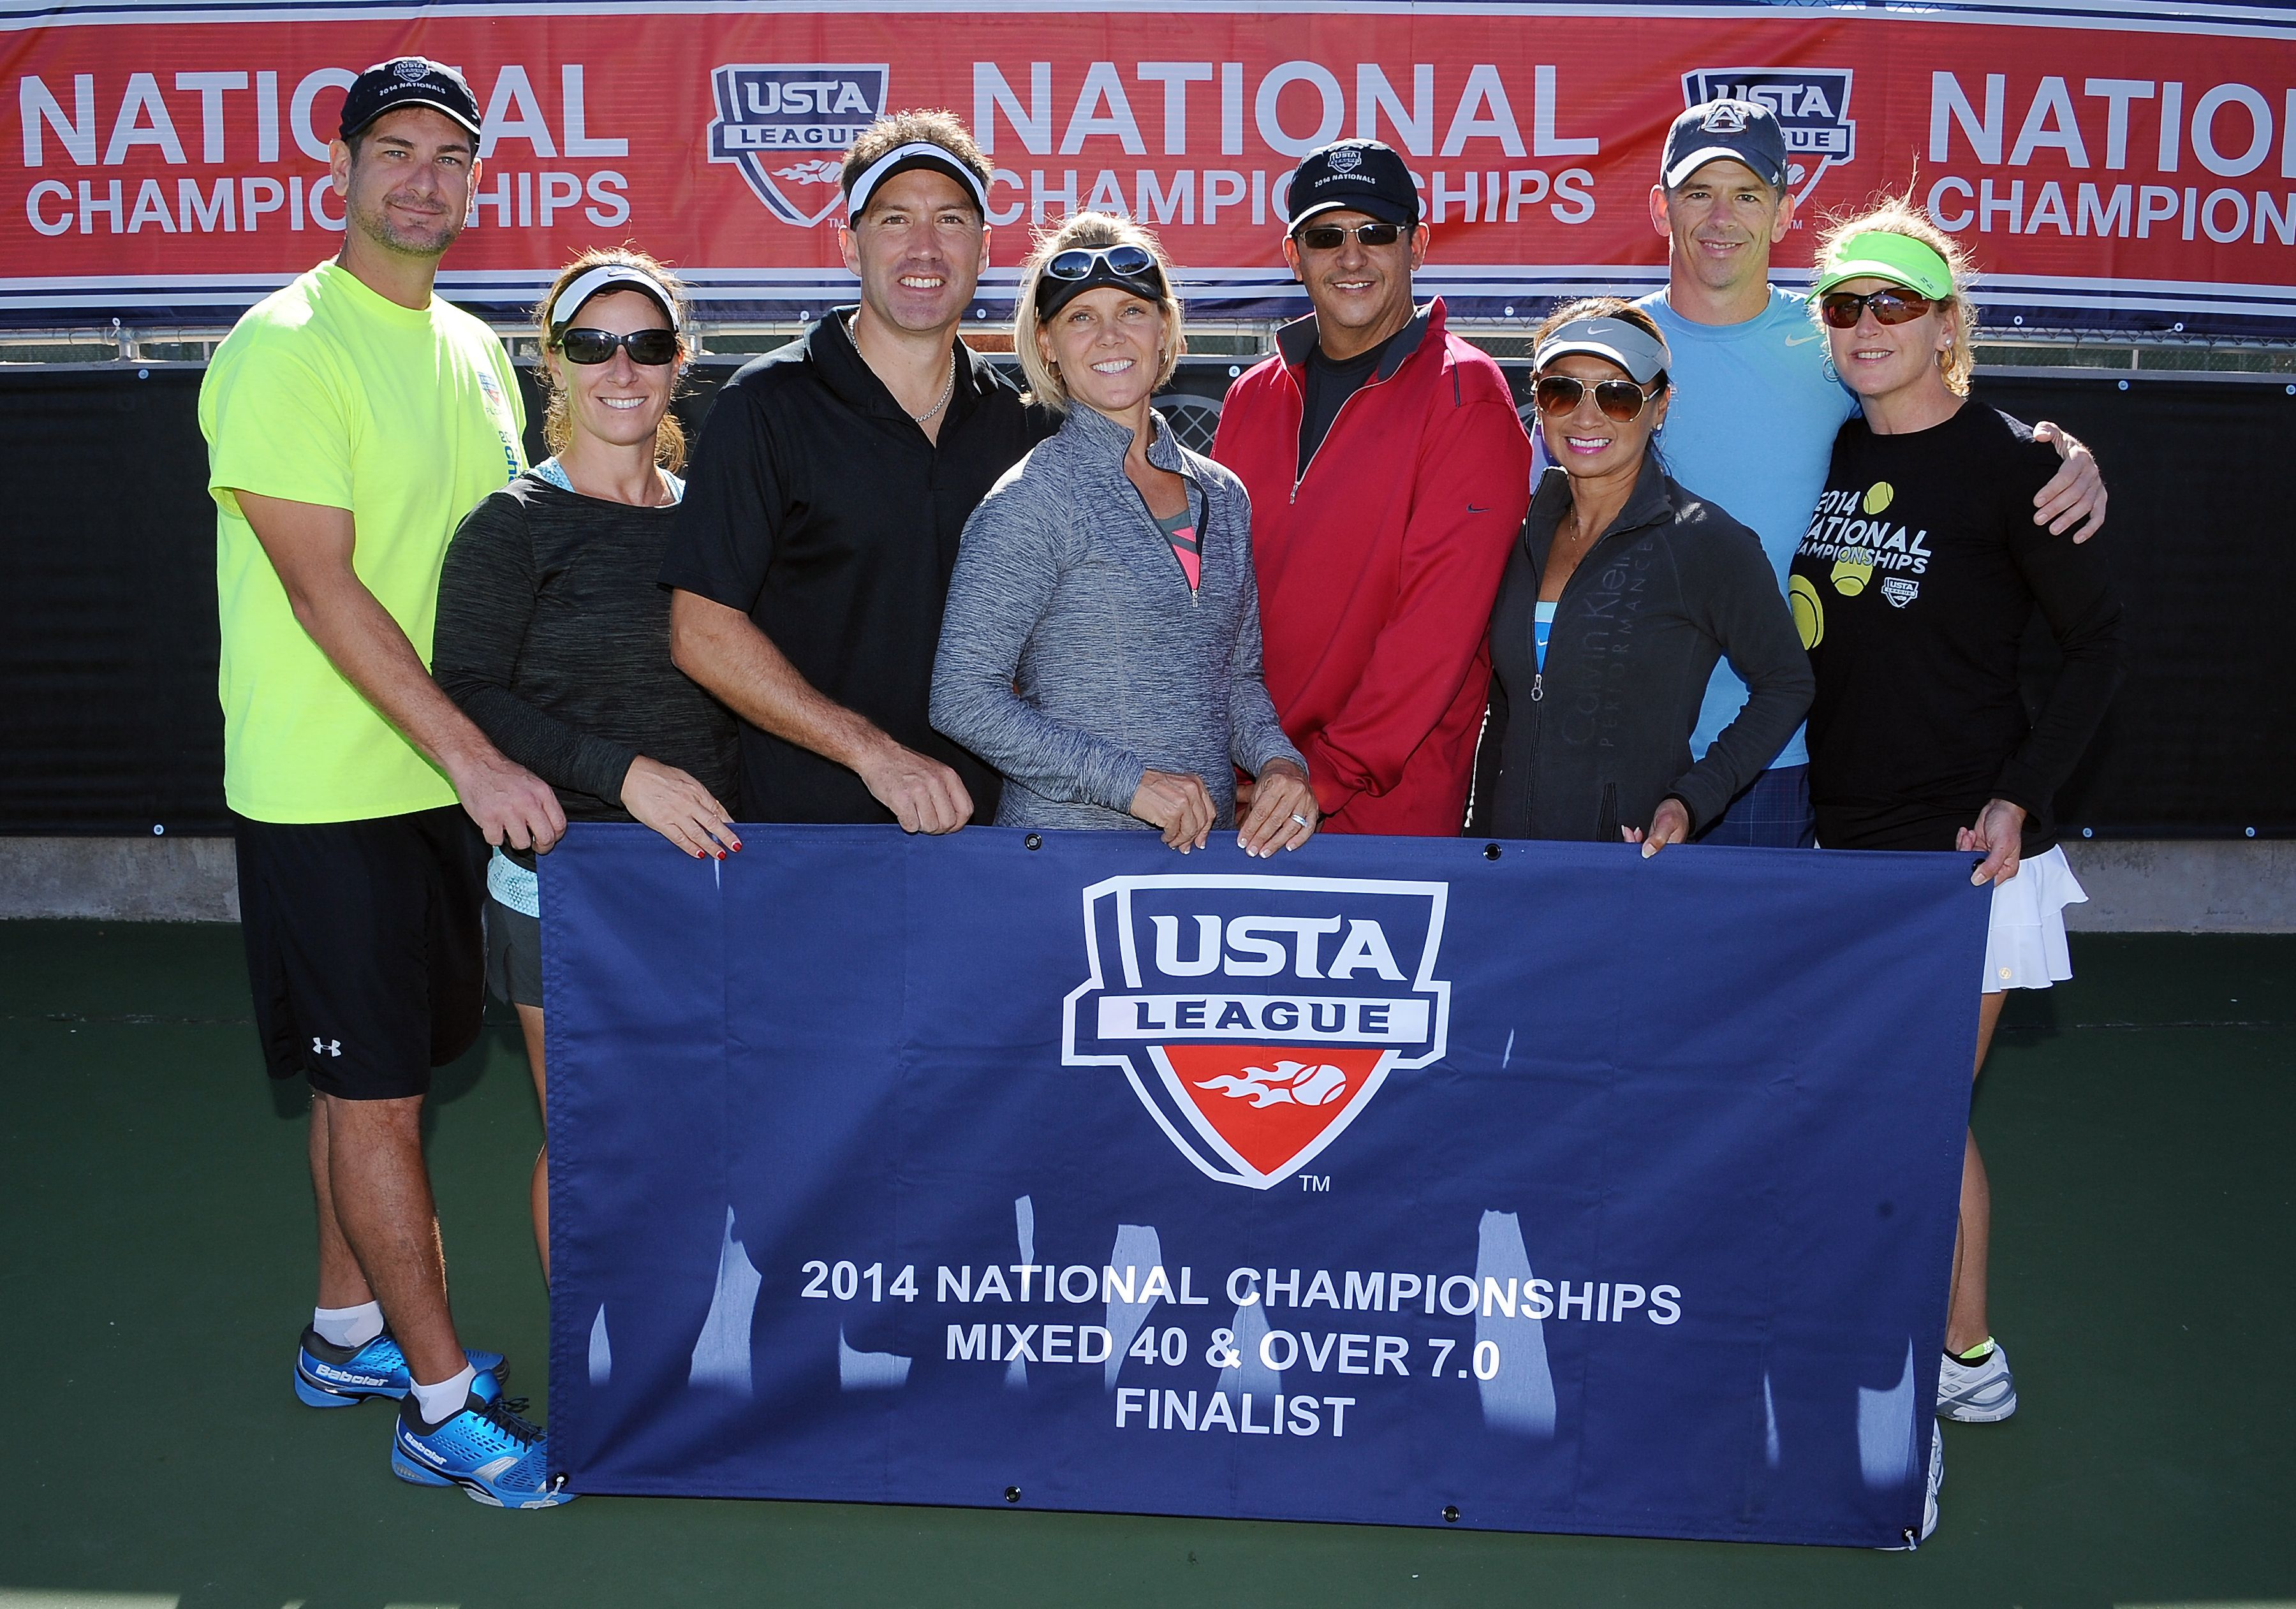 2014 USTA Florida Mixed 40 & Over 7.0 Finalists at the USTA National League Championships